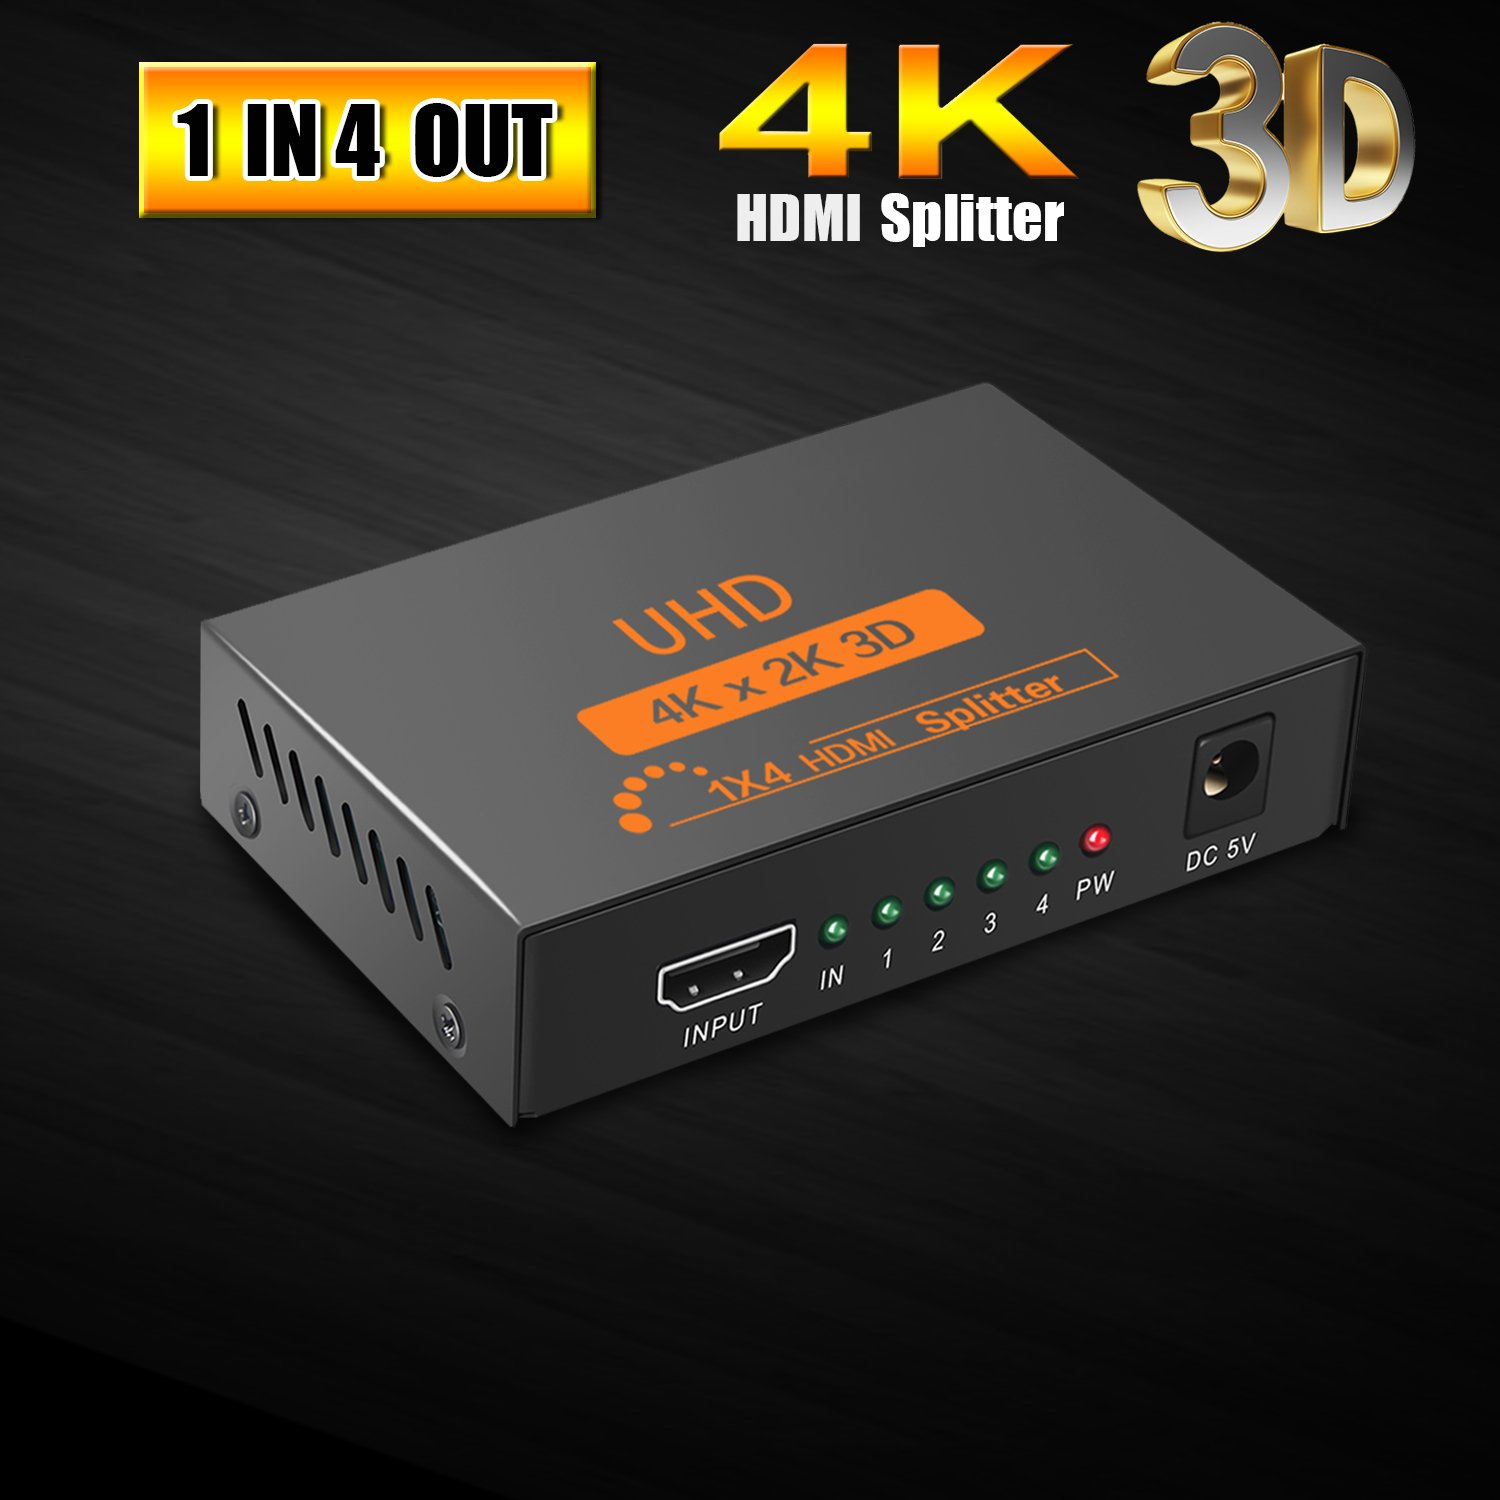 Huaka HDMI Splitter 4K, HDMI Powered Splitter 1 in 4 Out 4K X 2K 3D 1080P Signal Distributor with Metal Box US Adapter Included for HDTV PC PS4 Xbox Blue-ray etc [1 Input to 4 Output 2018 Version]